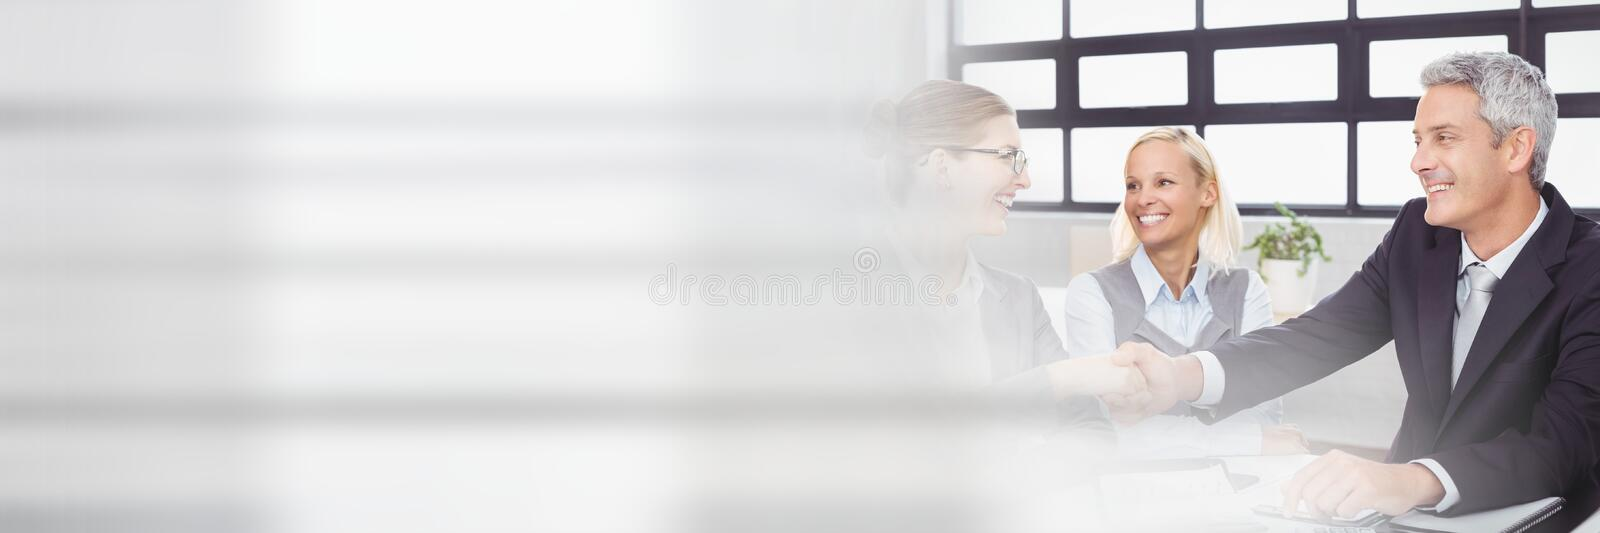 Business people having a meeting with transition effect royalty free stock image